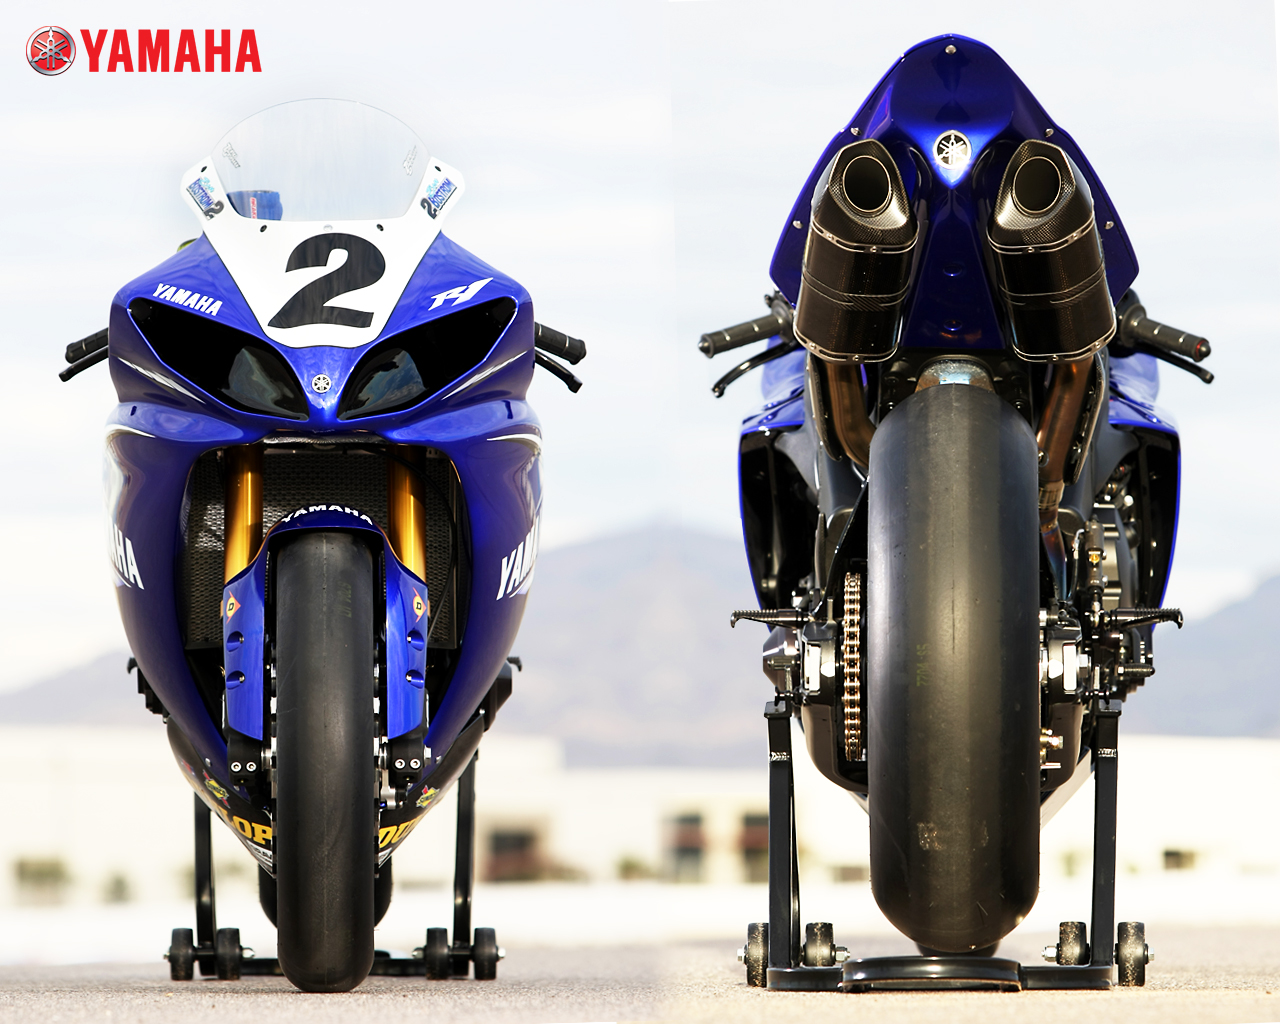 yamaha-r1-wallpapers-8